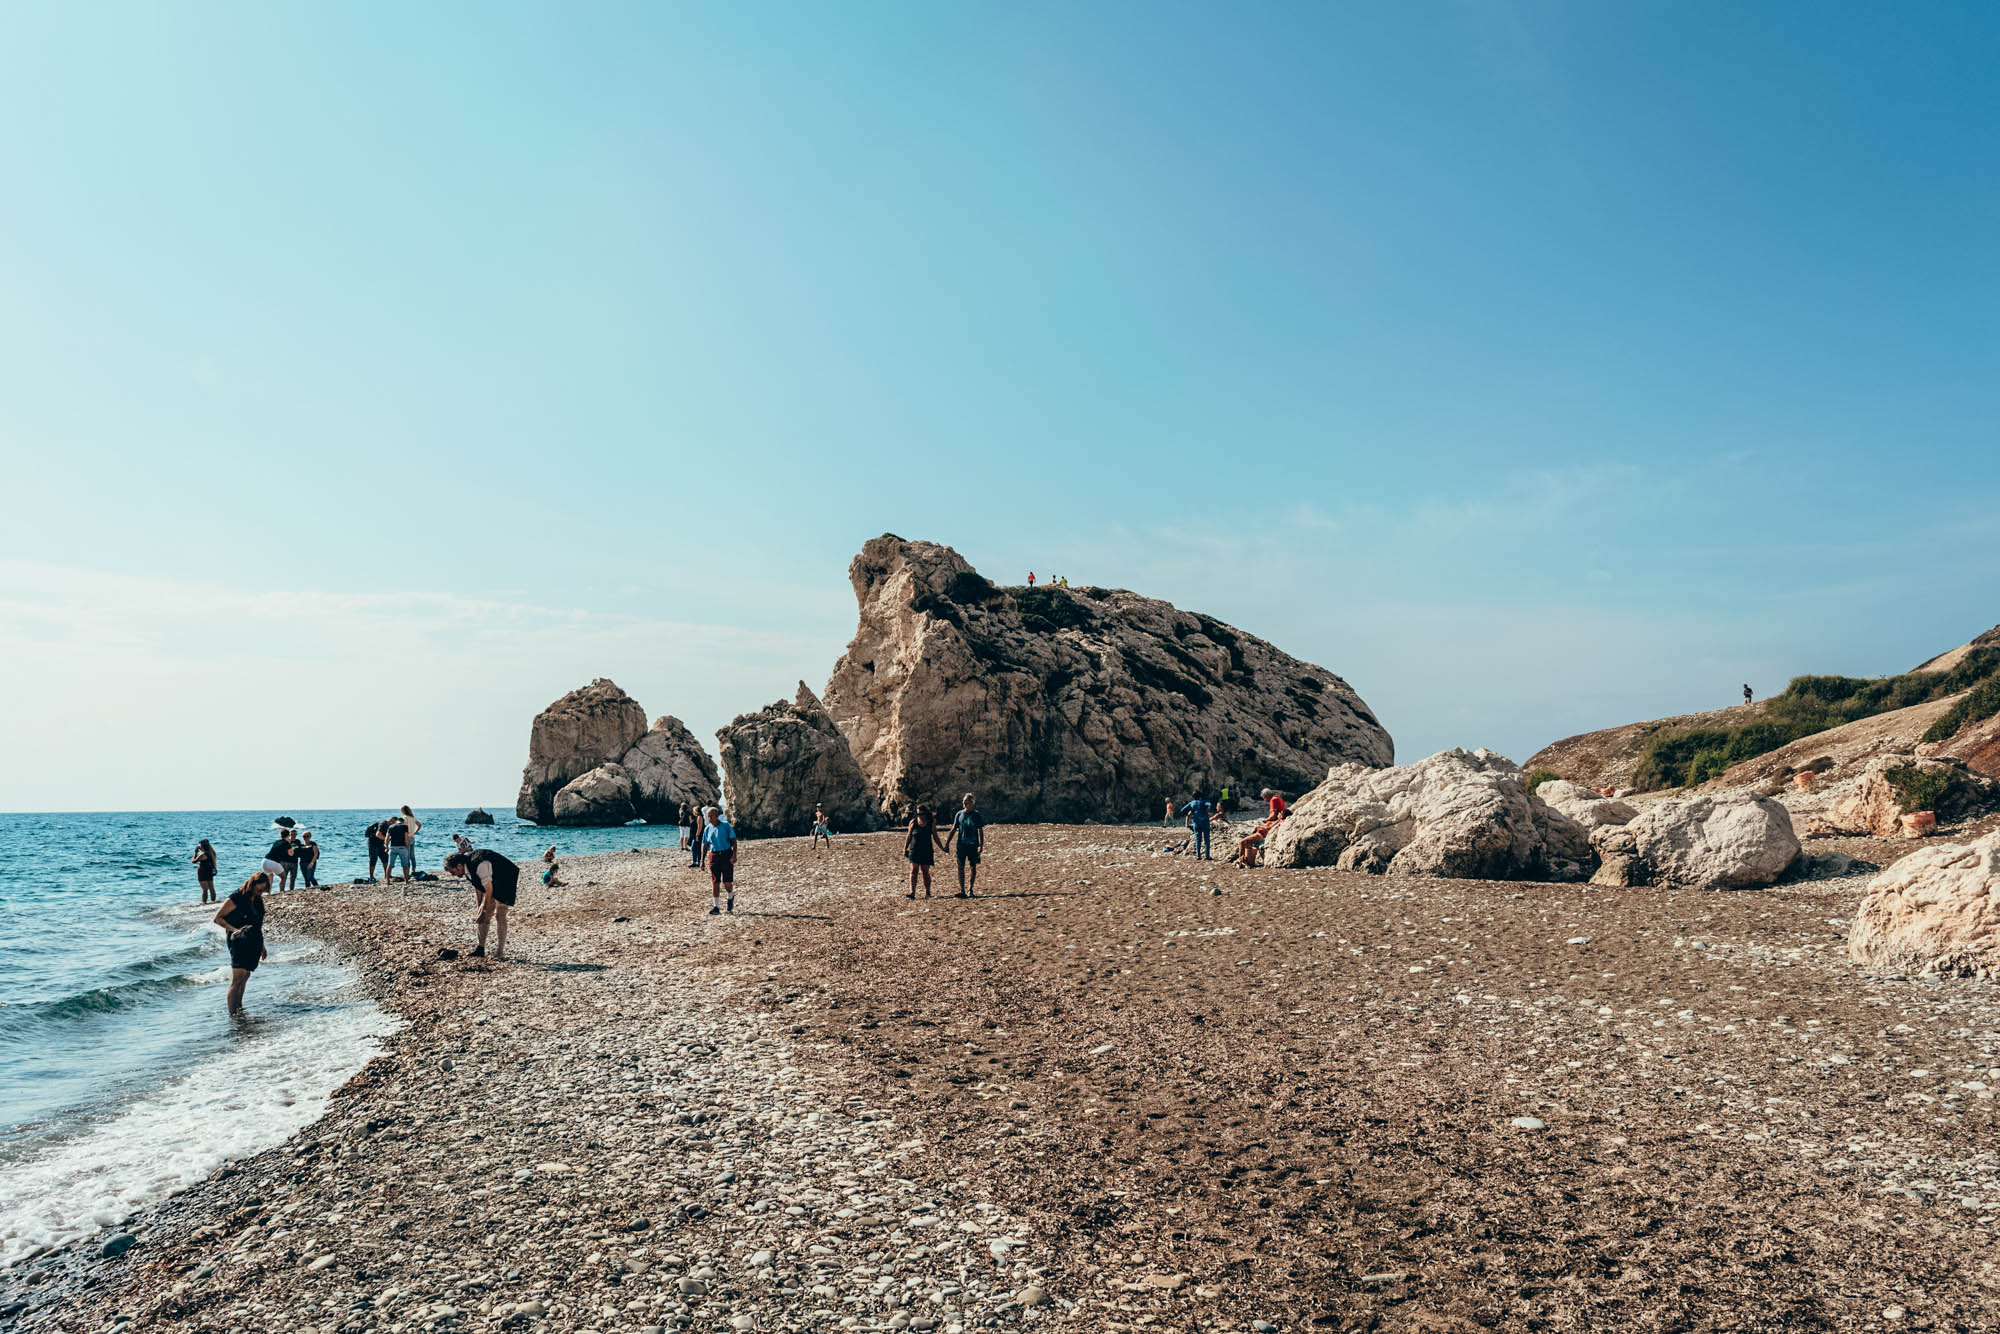 Aphrodite's Rock, a landmark located near Paphos. Republic of Cyprus, Europe